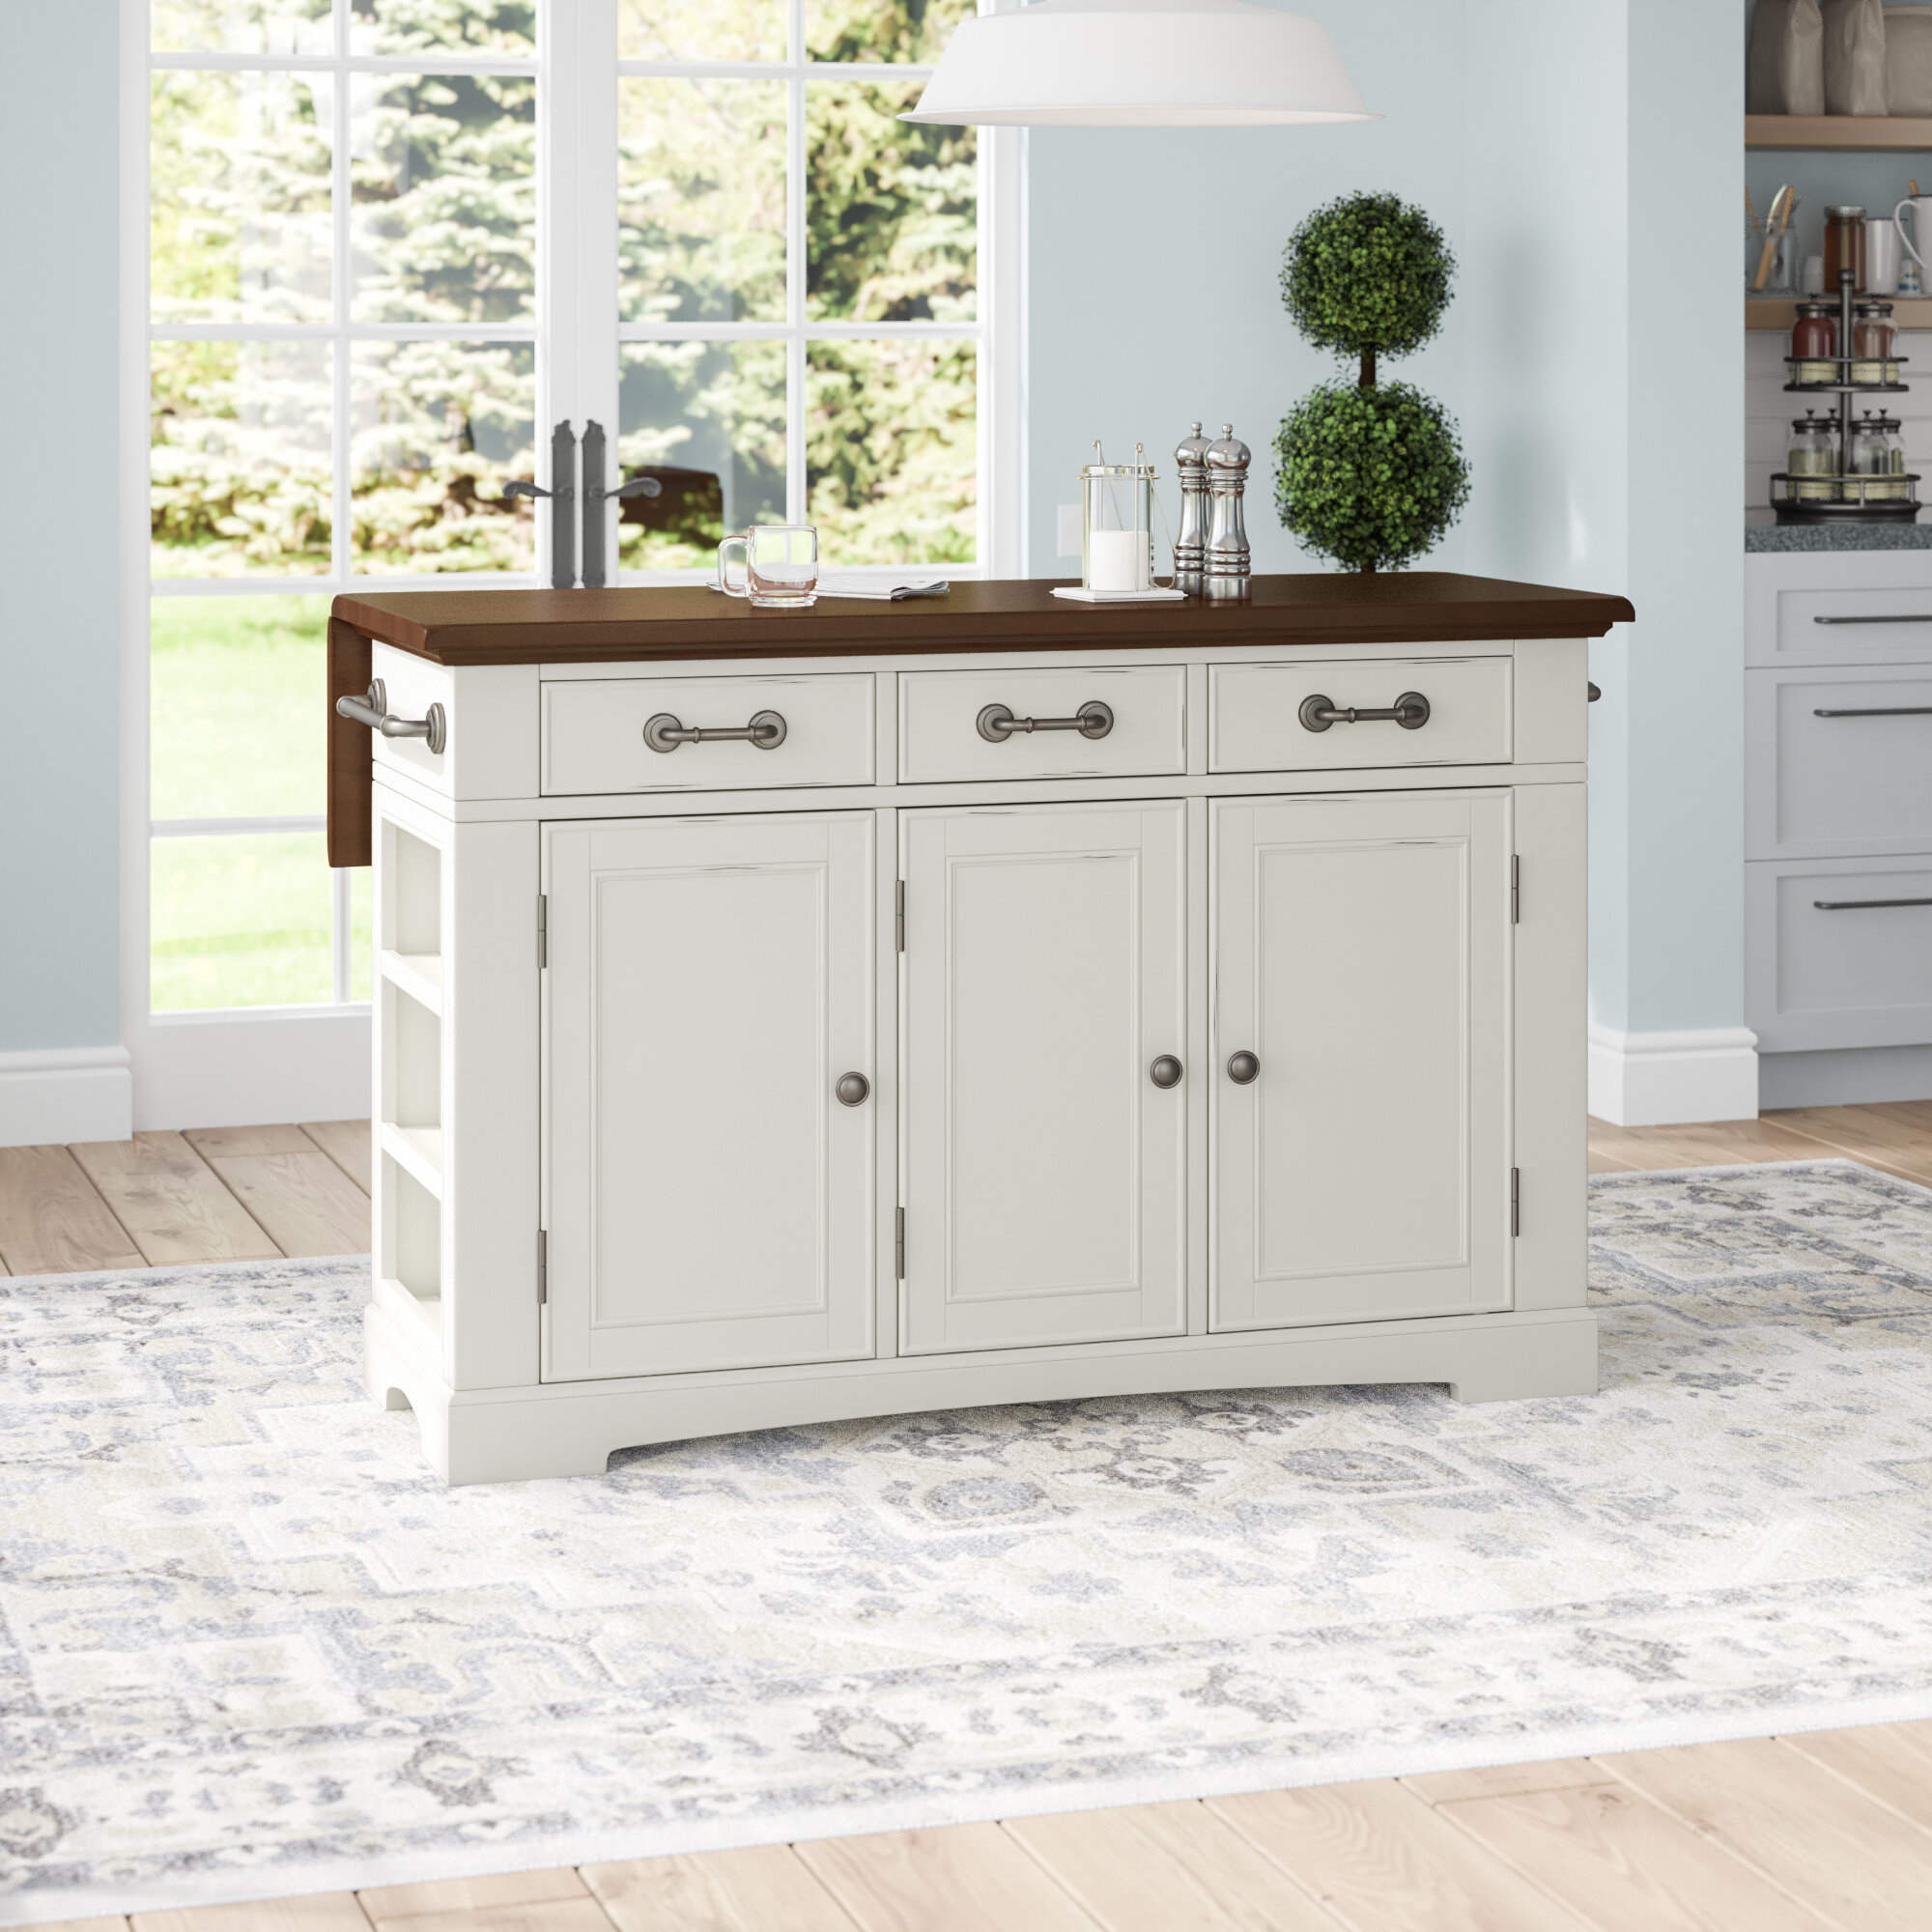 Drop Leaf Kitchen Islands Carts Free Shipping Over 35 Wayfair